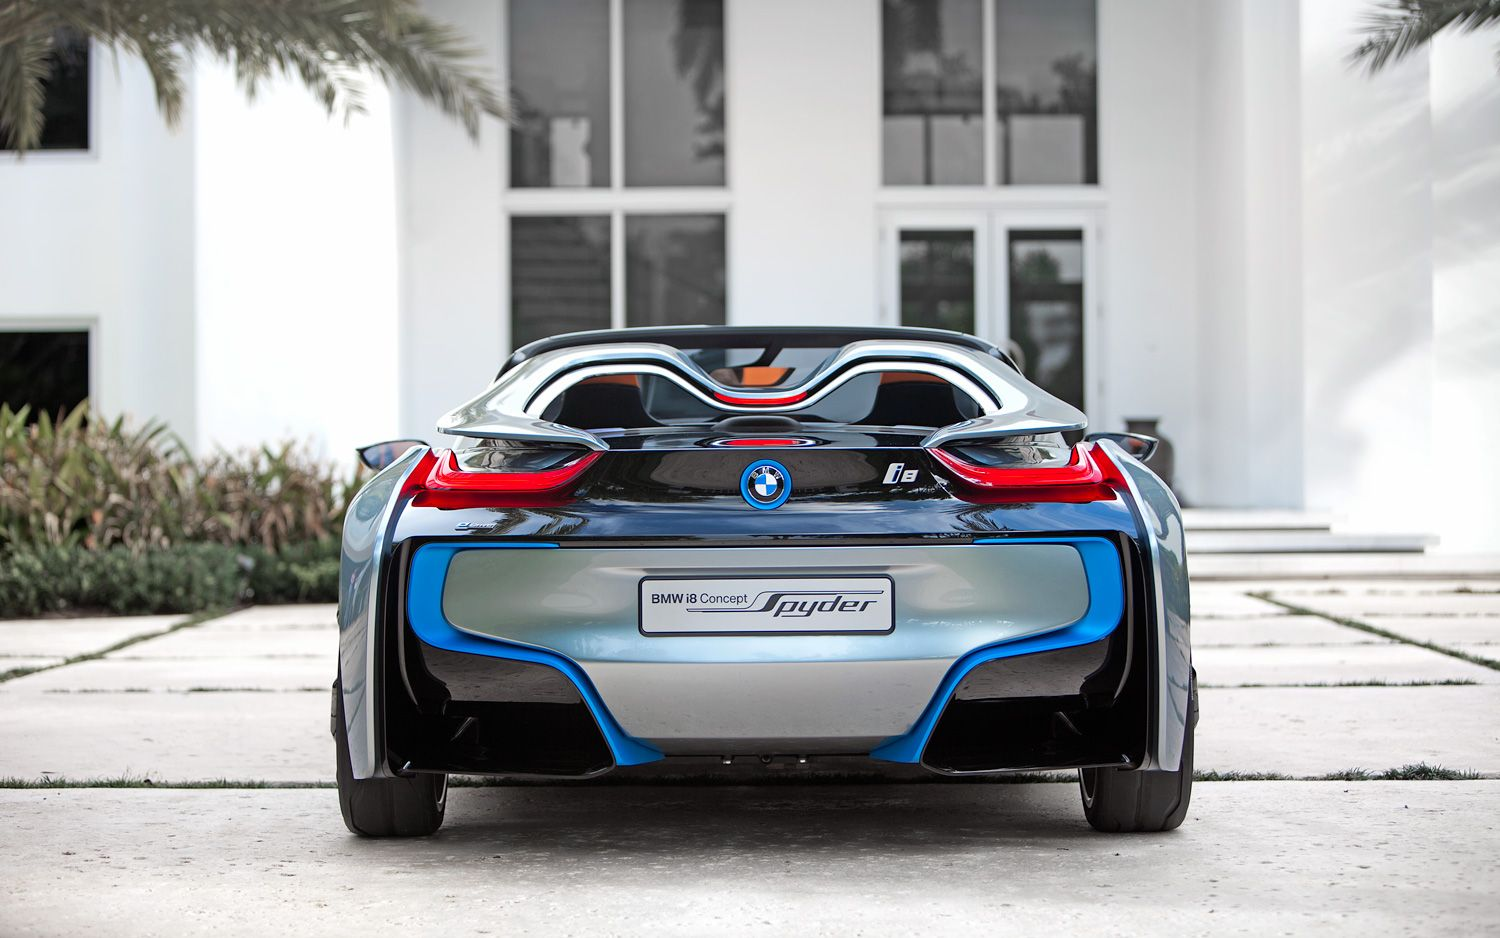 Image Result For Bmw I8 Back Z4 Futuristic Cars Concept Exotic